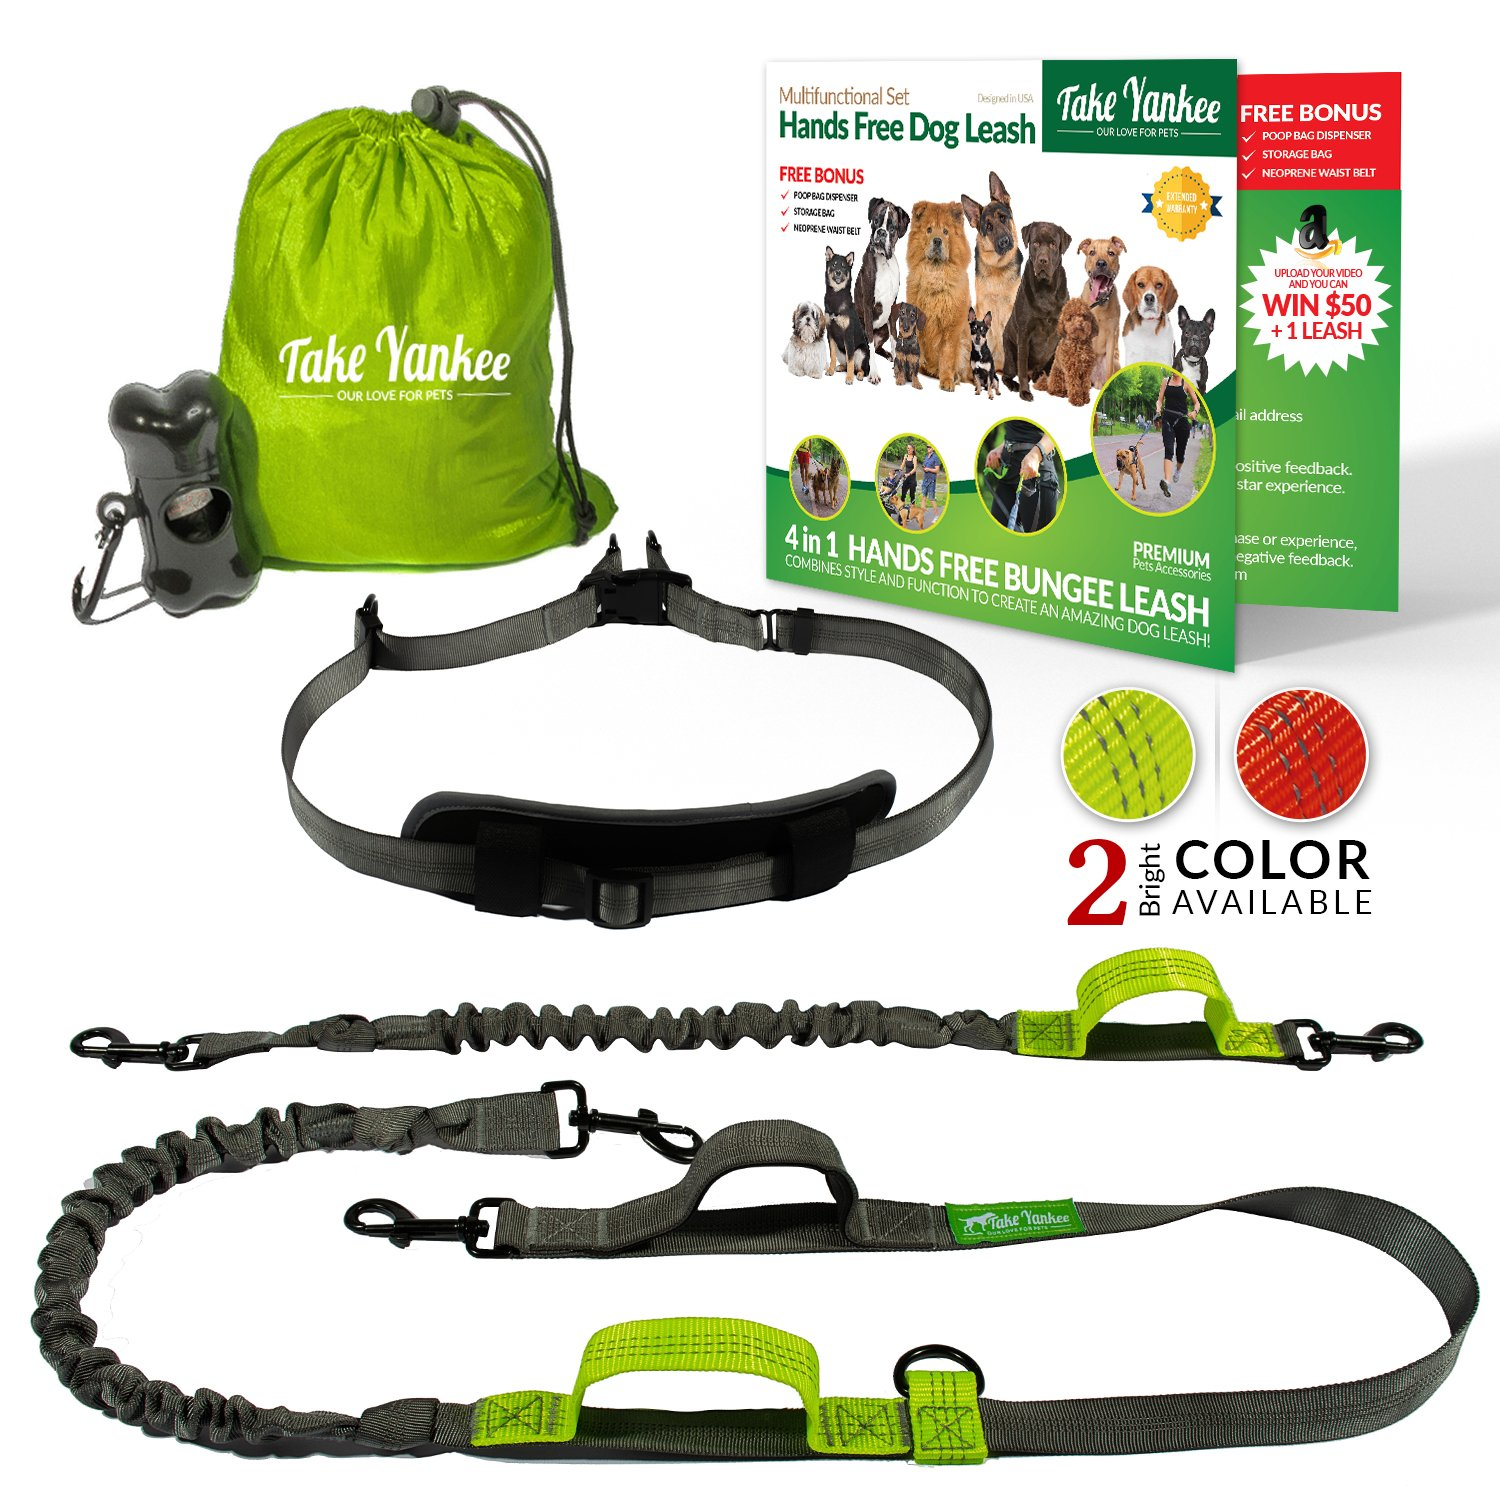 Hands Free Dog Leash for Running Training Walking & Double Dog Leash Coupler Set Fits 2 Dogs Bungee Leash & Reflective Leash Adjustable Waist Belt & Retractable Leashes by Take Yankee